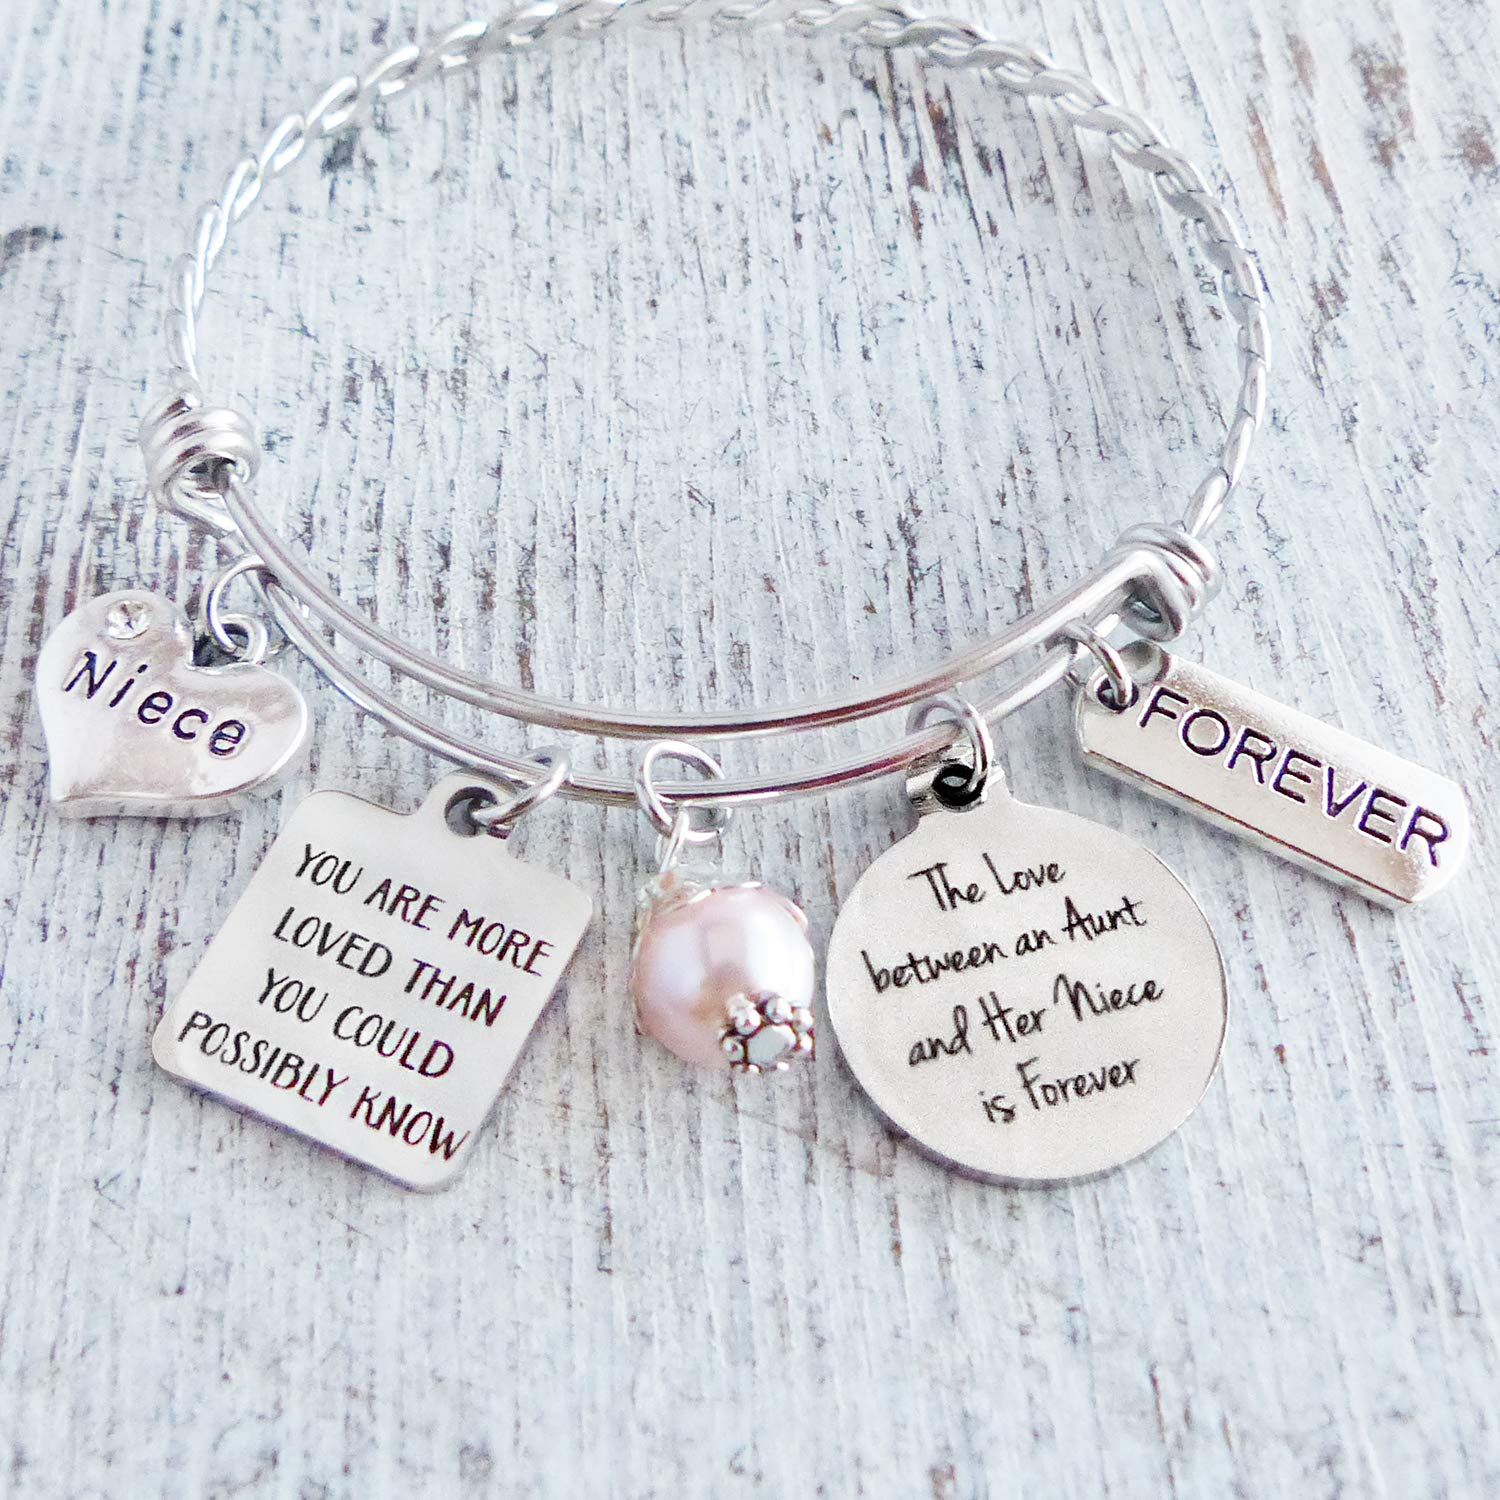 unisex Niece Department store Gifts from Aunt The Love an Her and Between is